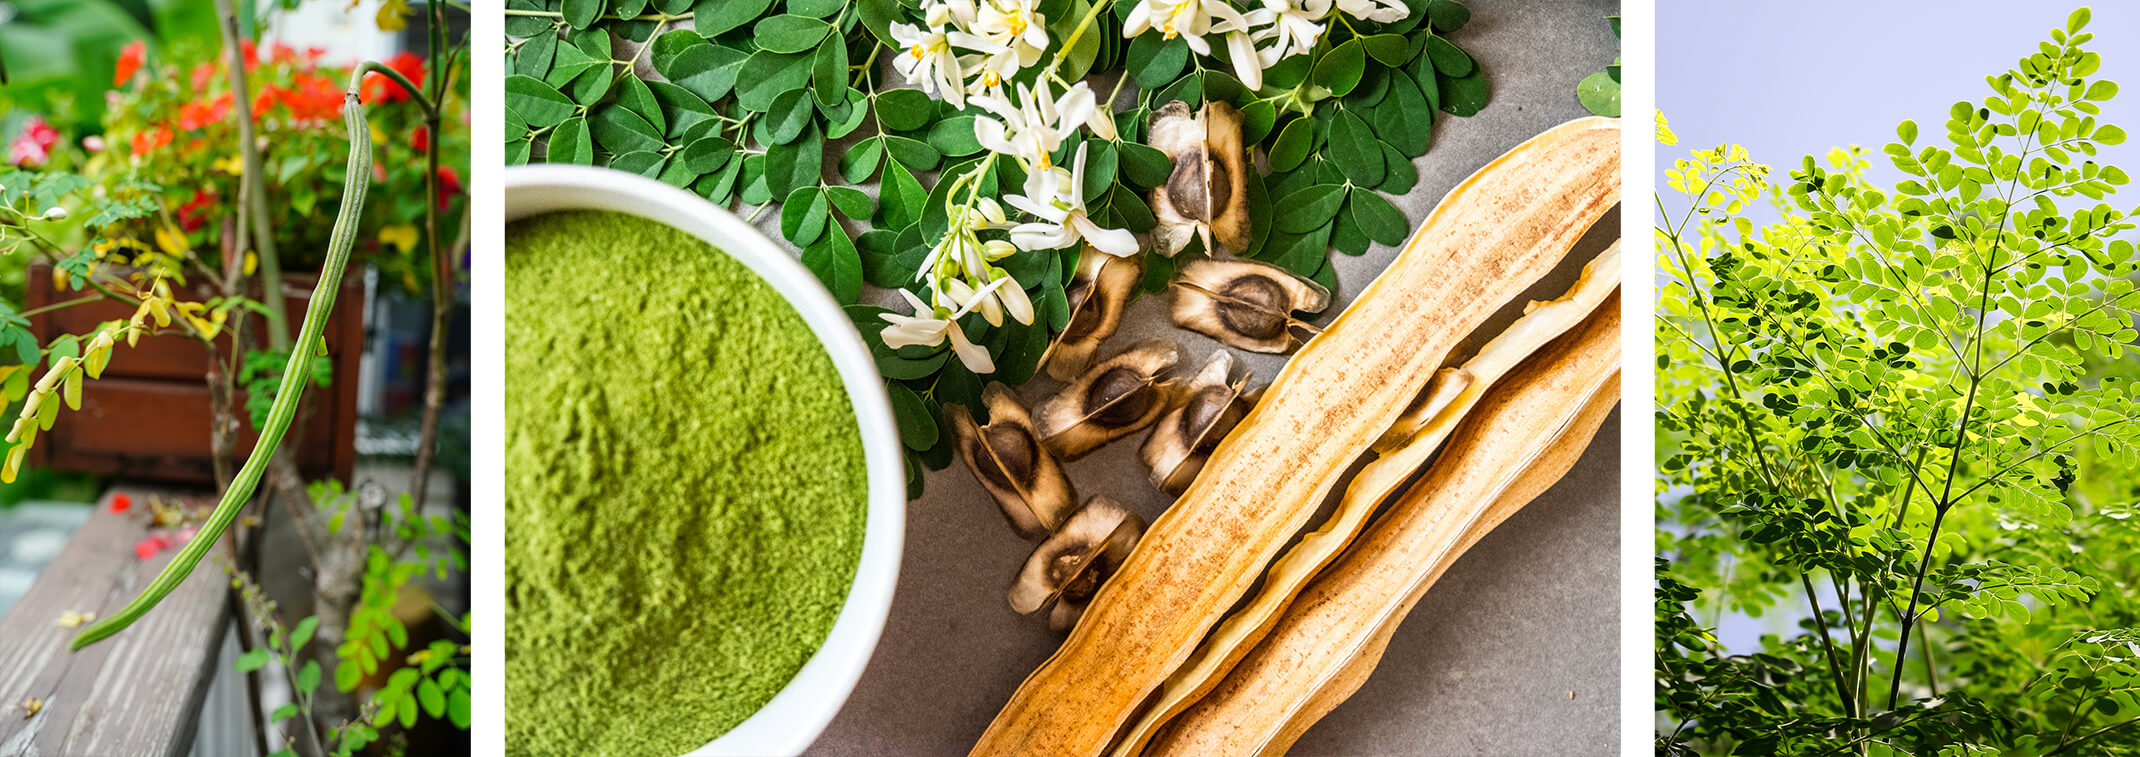 3 images - a closeup of a moringa tree pod with blurred leaves and red flowers in the background; moringa tree powder in a white bowl, moringa leaves, flowers, seeds and pods on a grey surface; and a moringa tree against a blue sky